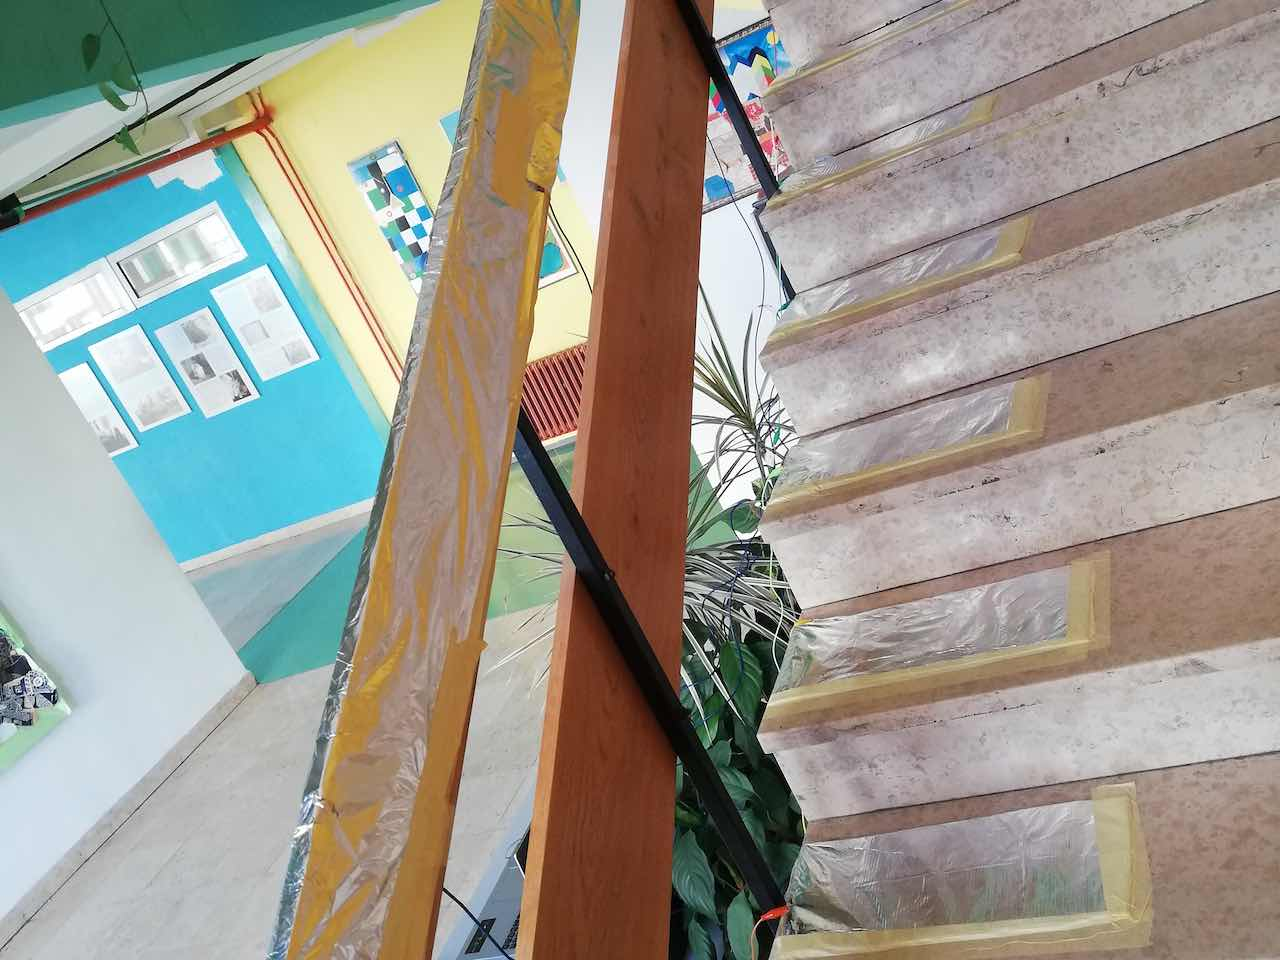 Our Instruments and School Stairs Create Magical Sounds